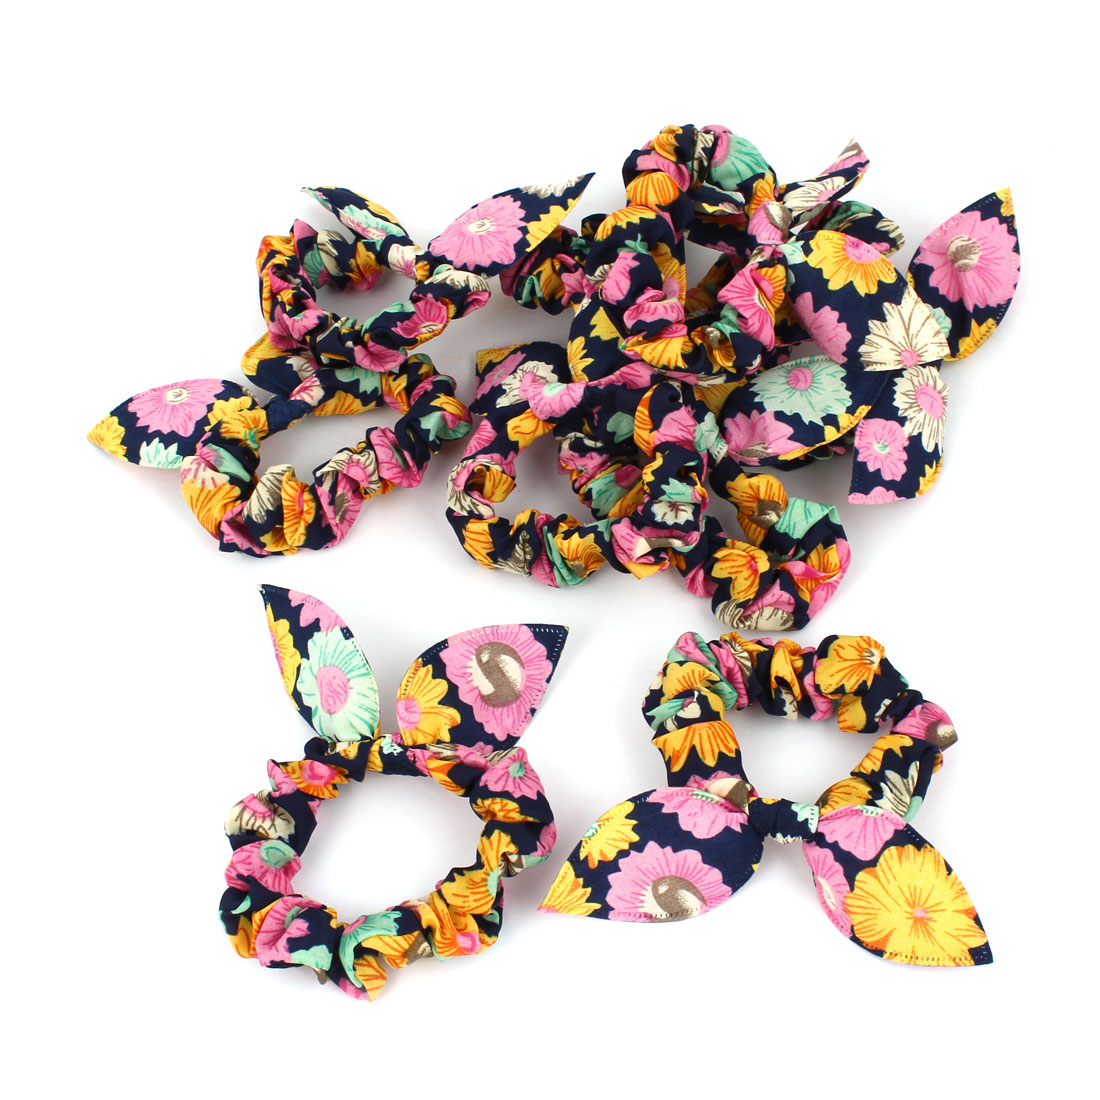 Girls Colorful Flower Pattern Rabbit Ear Elastic Hair Tie Ponytail Holder 10 Pcs